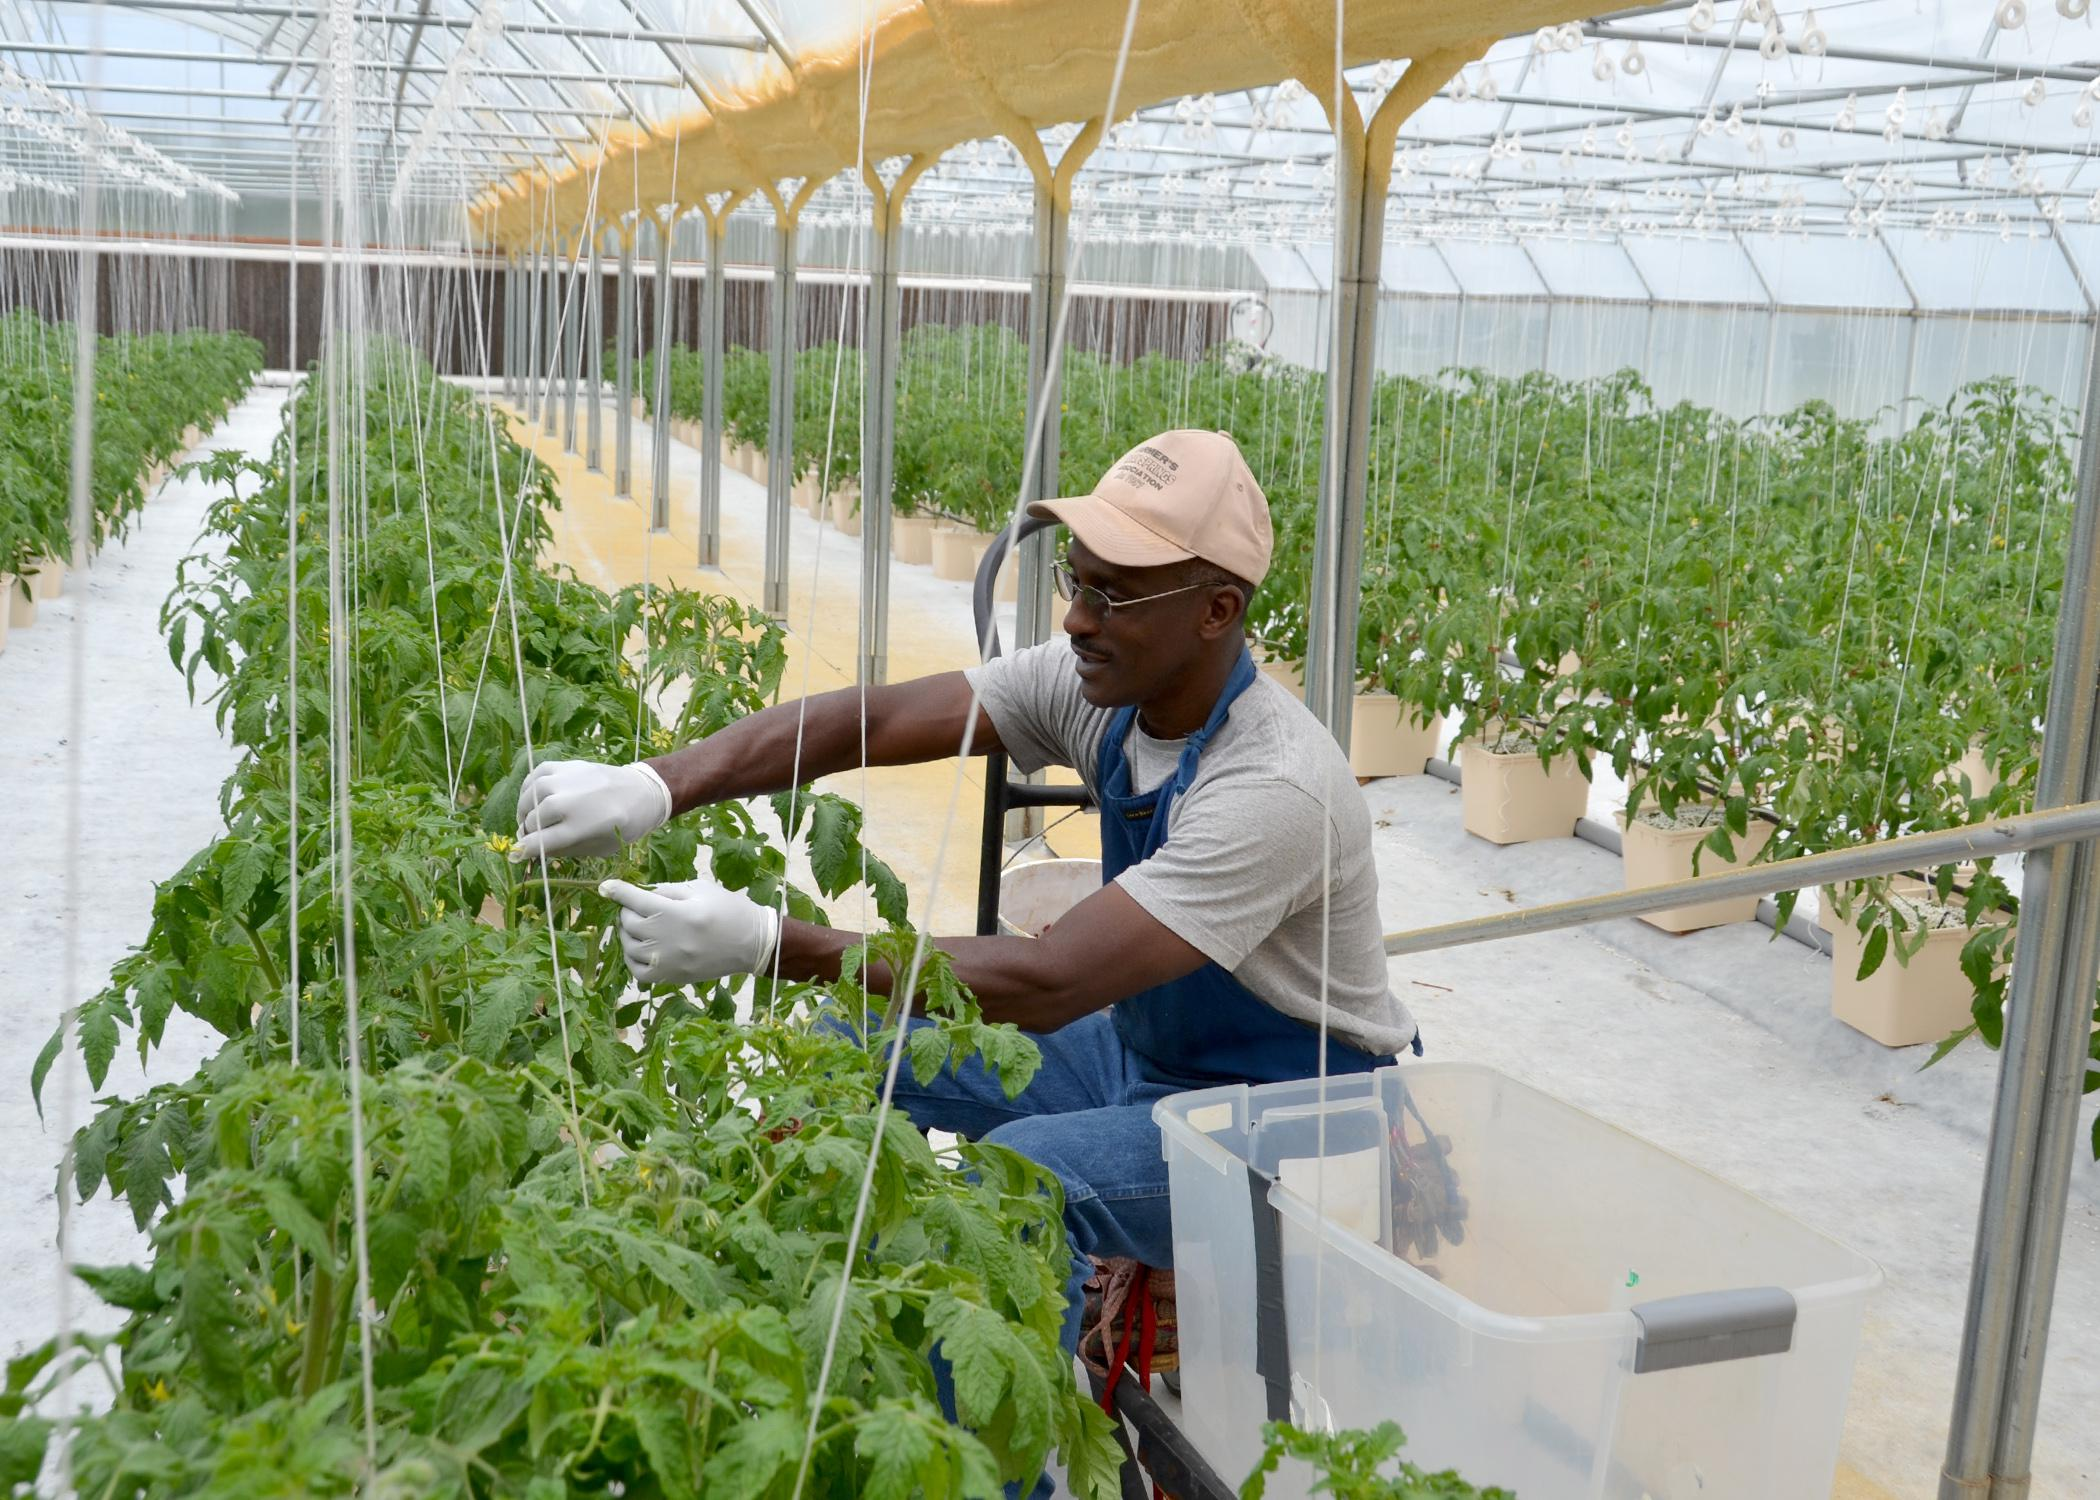 Leon Eaton removes suckers from his heirloom Cherokee Purple tomato plants on March 28, 2015. Eaton grows tomatoes and other vegetables he grows hydroponically on his Mount Olive, Mississippi, farm and sells them at farmers markets. (Photo by MSU Ag Communications/Susan Collins-Smith)